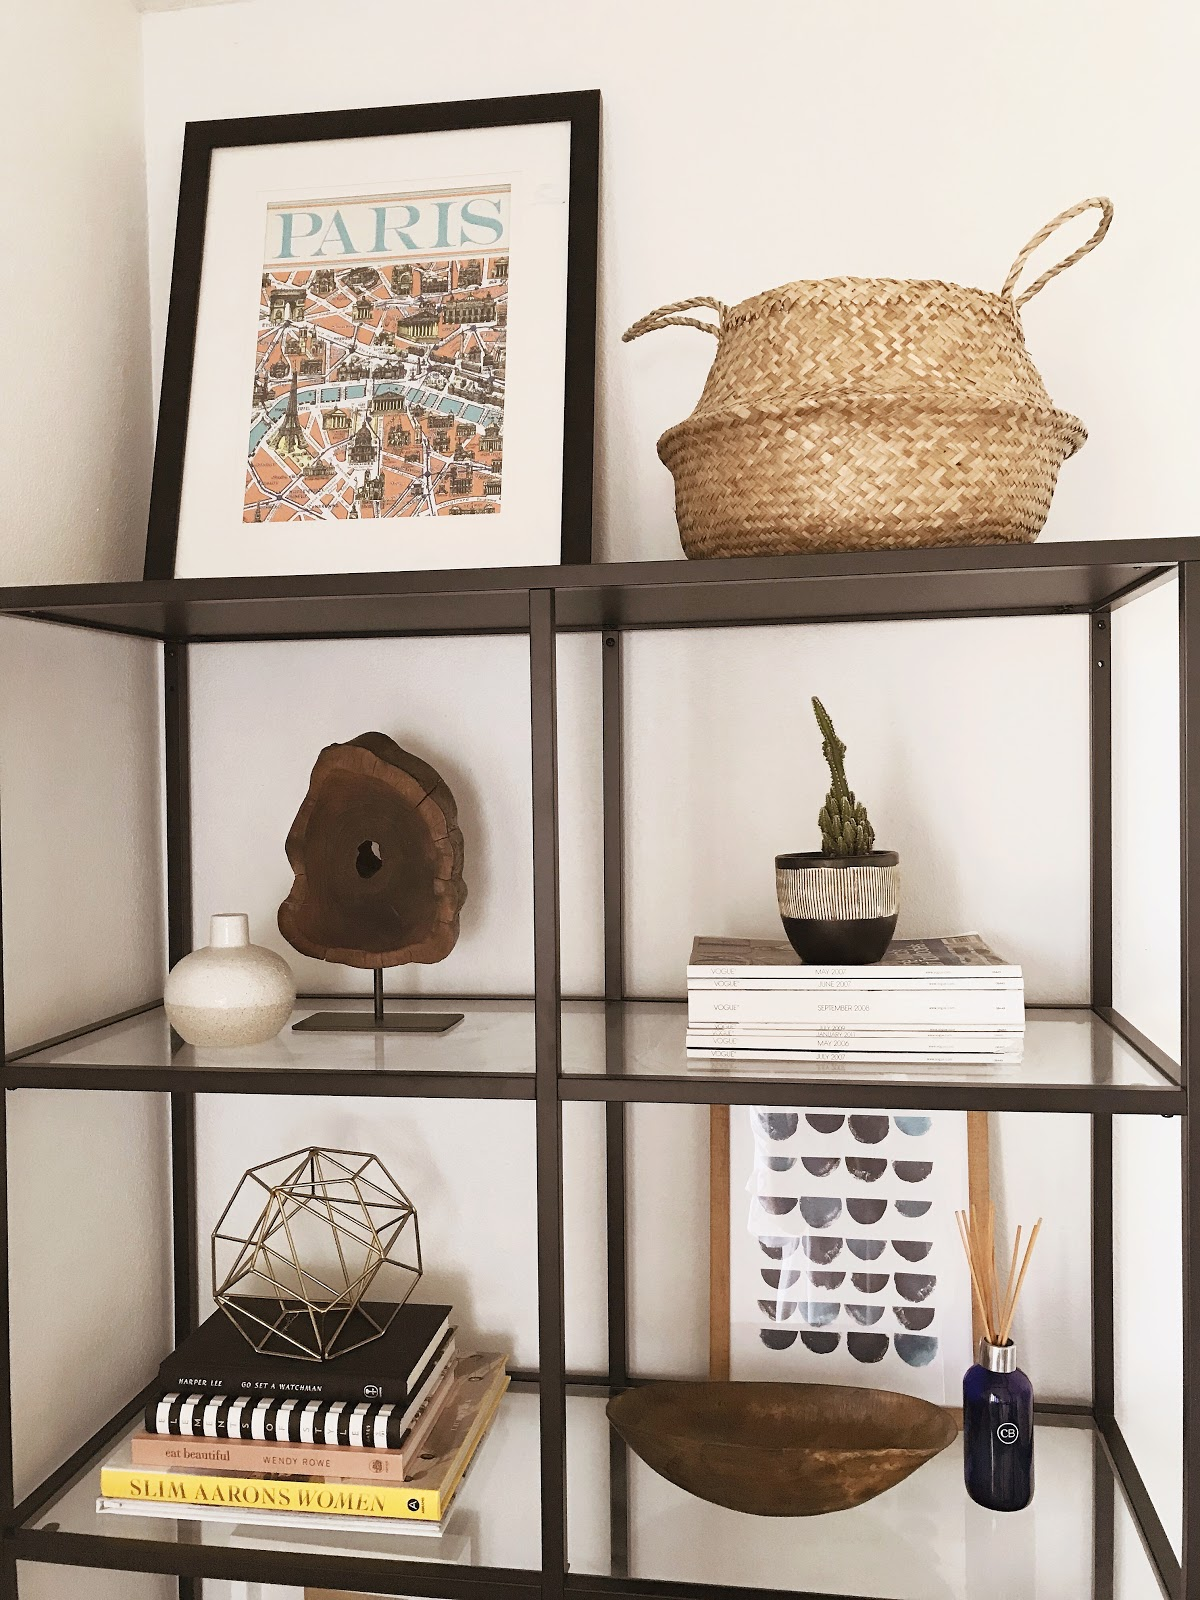 cute, affordable bookshelf decor